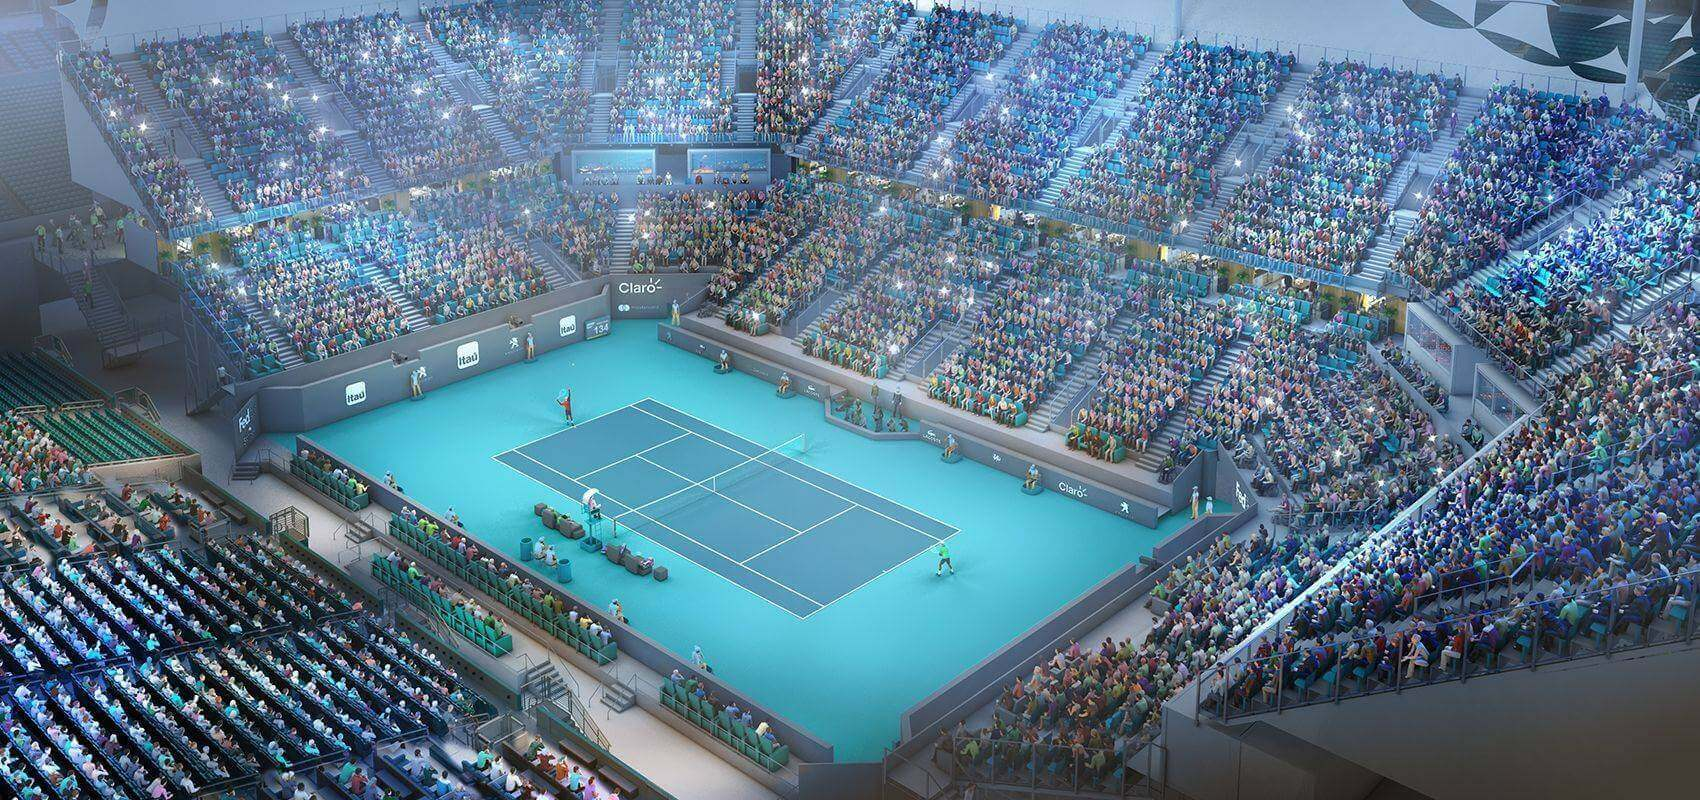 Acordis Re-signed a Multi-Year Partnership with the Miami Open